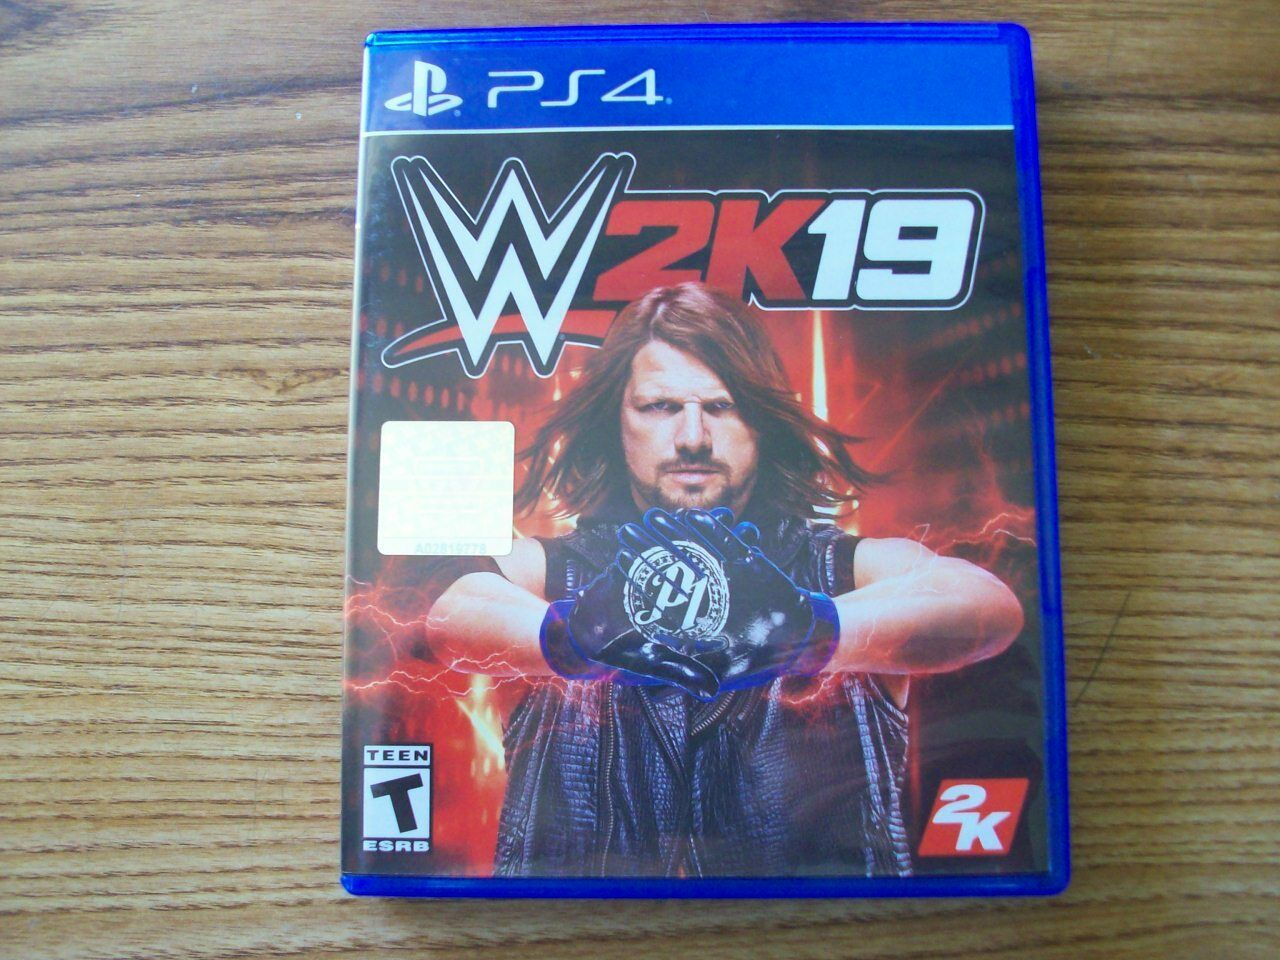 WWE 2K19 Playstation 4 - OPENED - GOOD & FREE SHIPPING